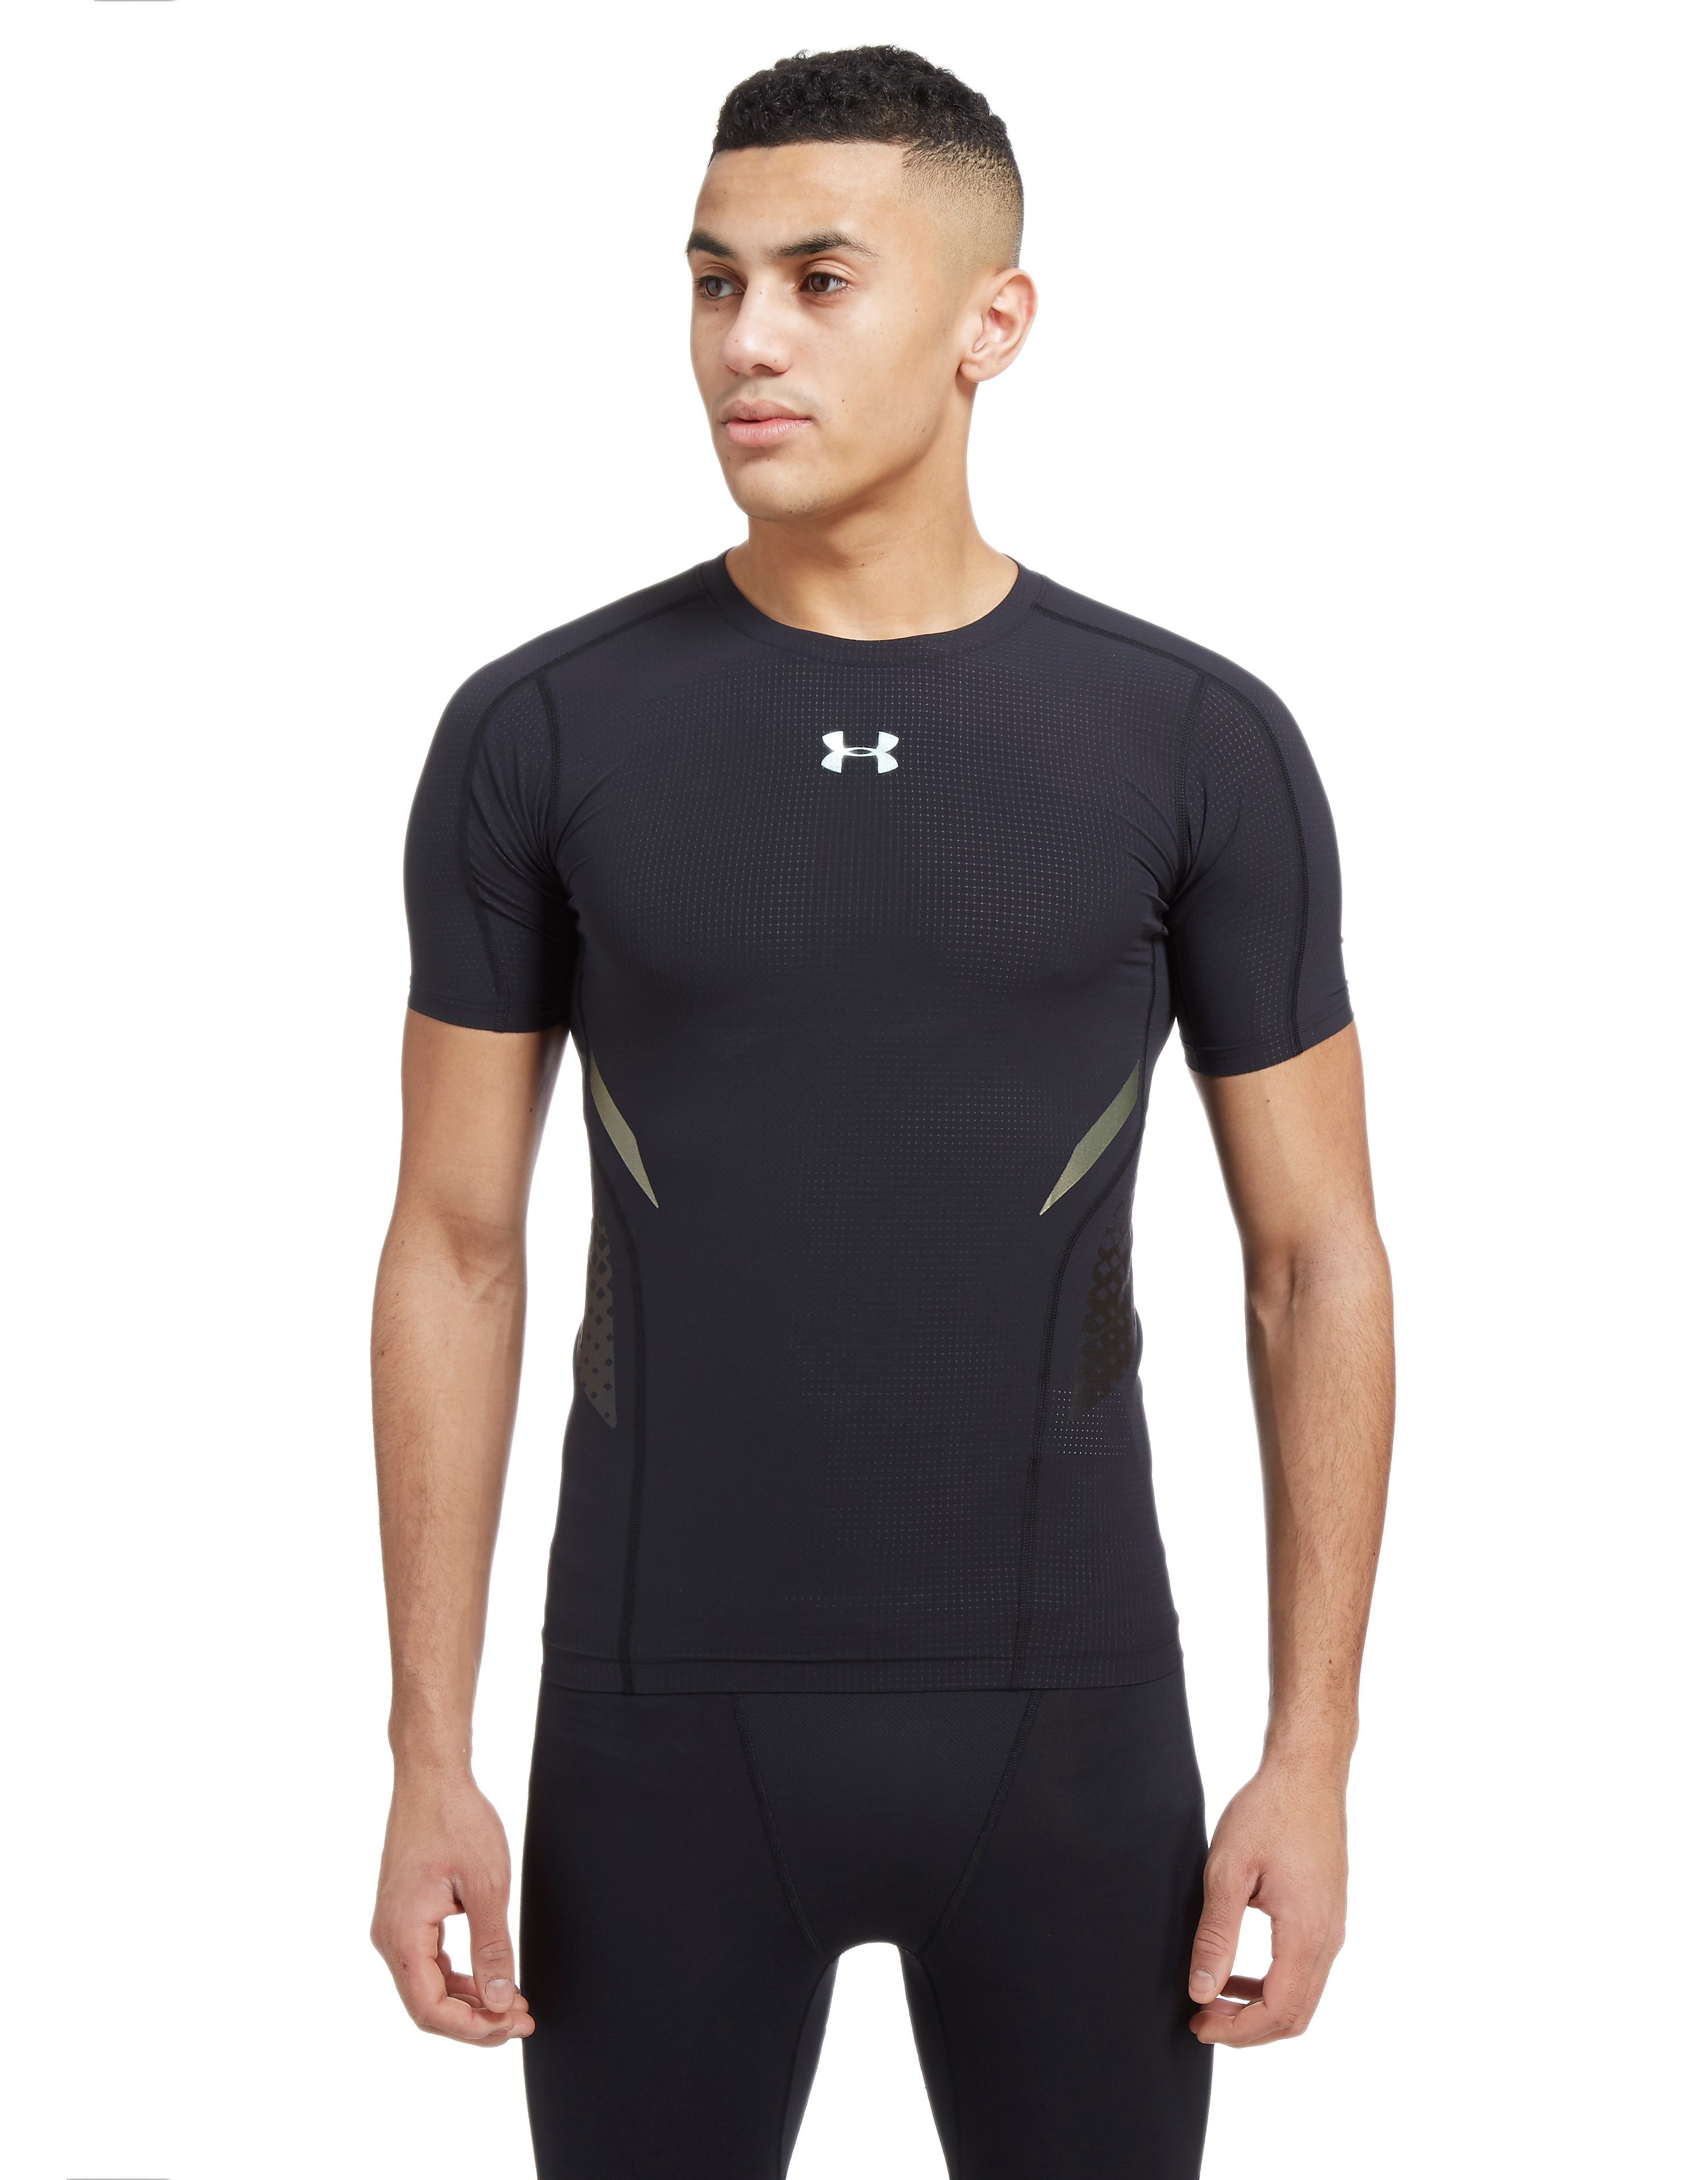 Under Armour HeatGear Armour Zone Compression T-Shirt